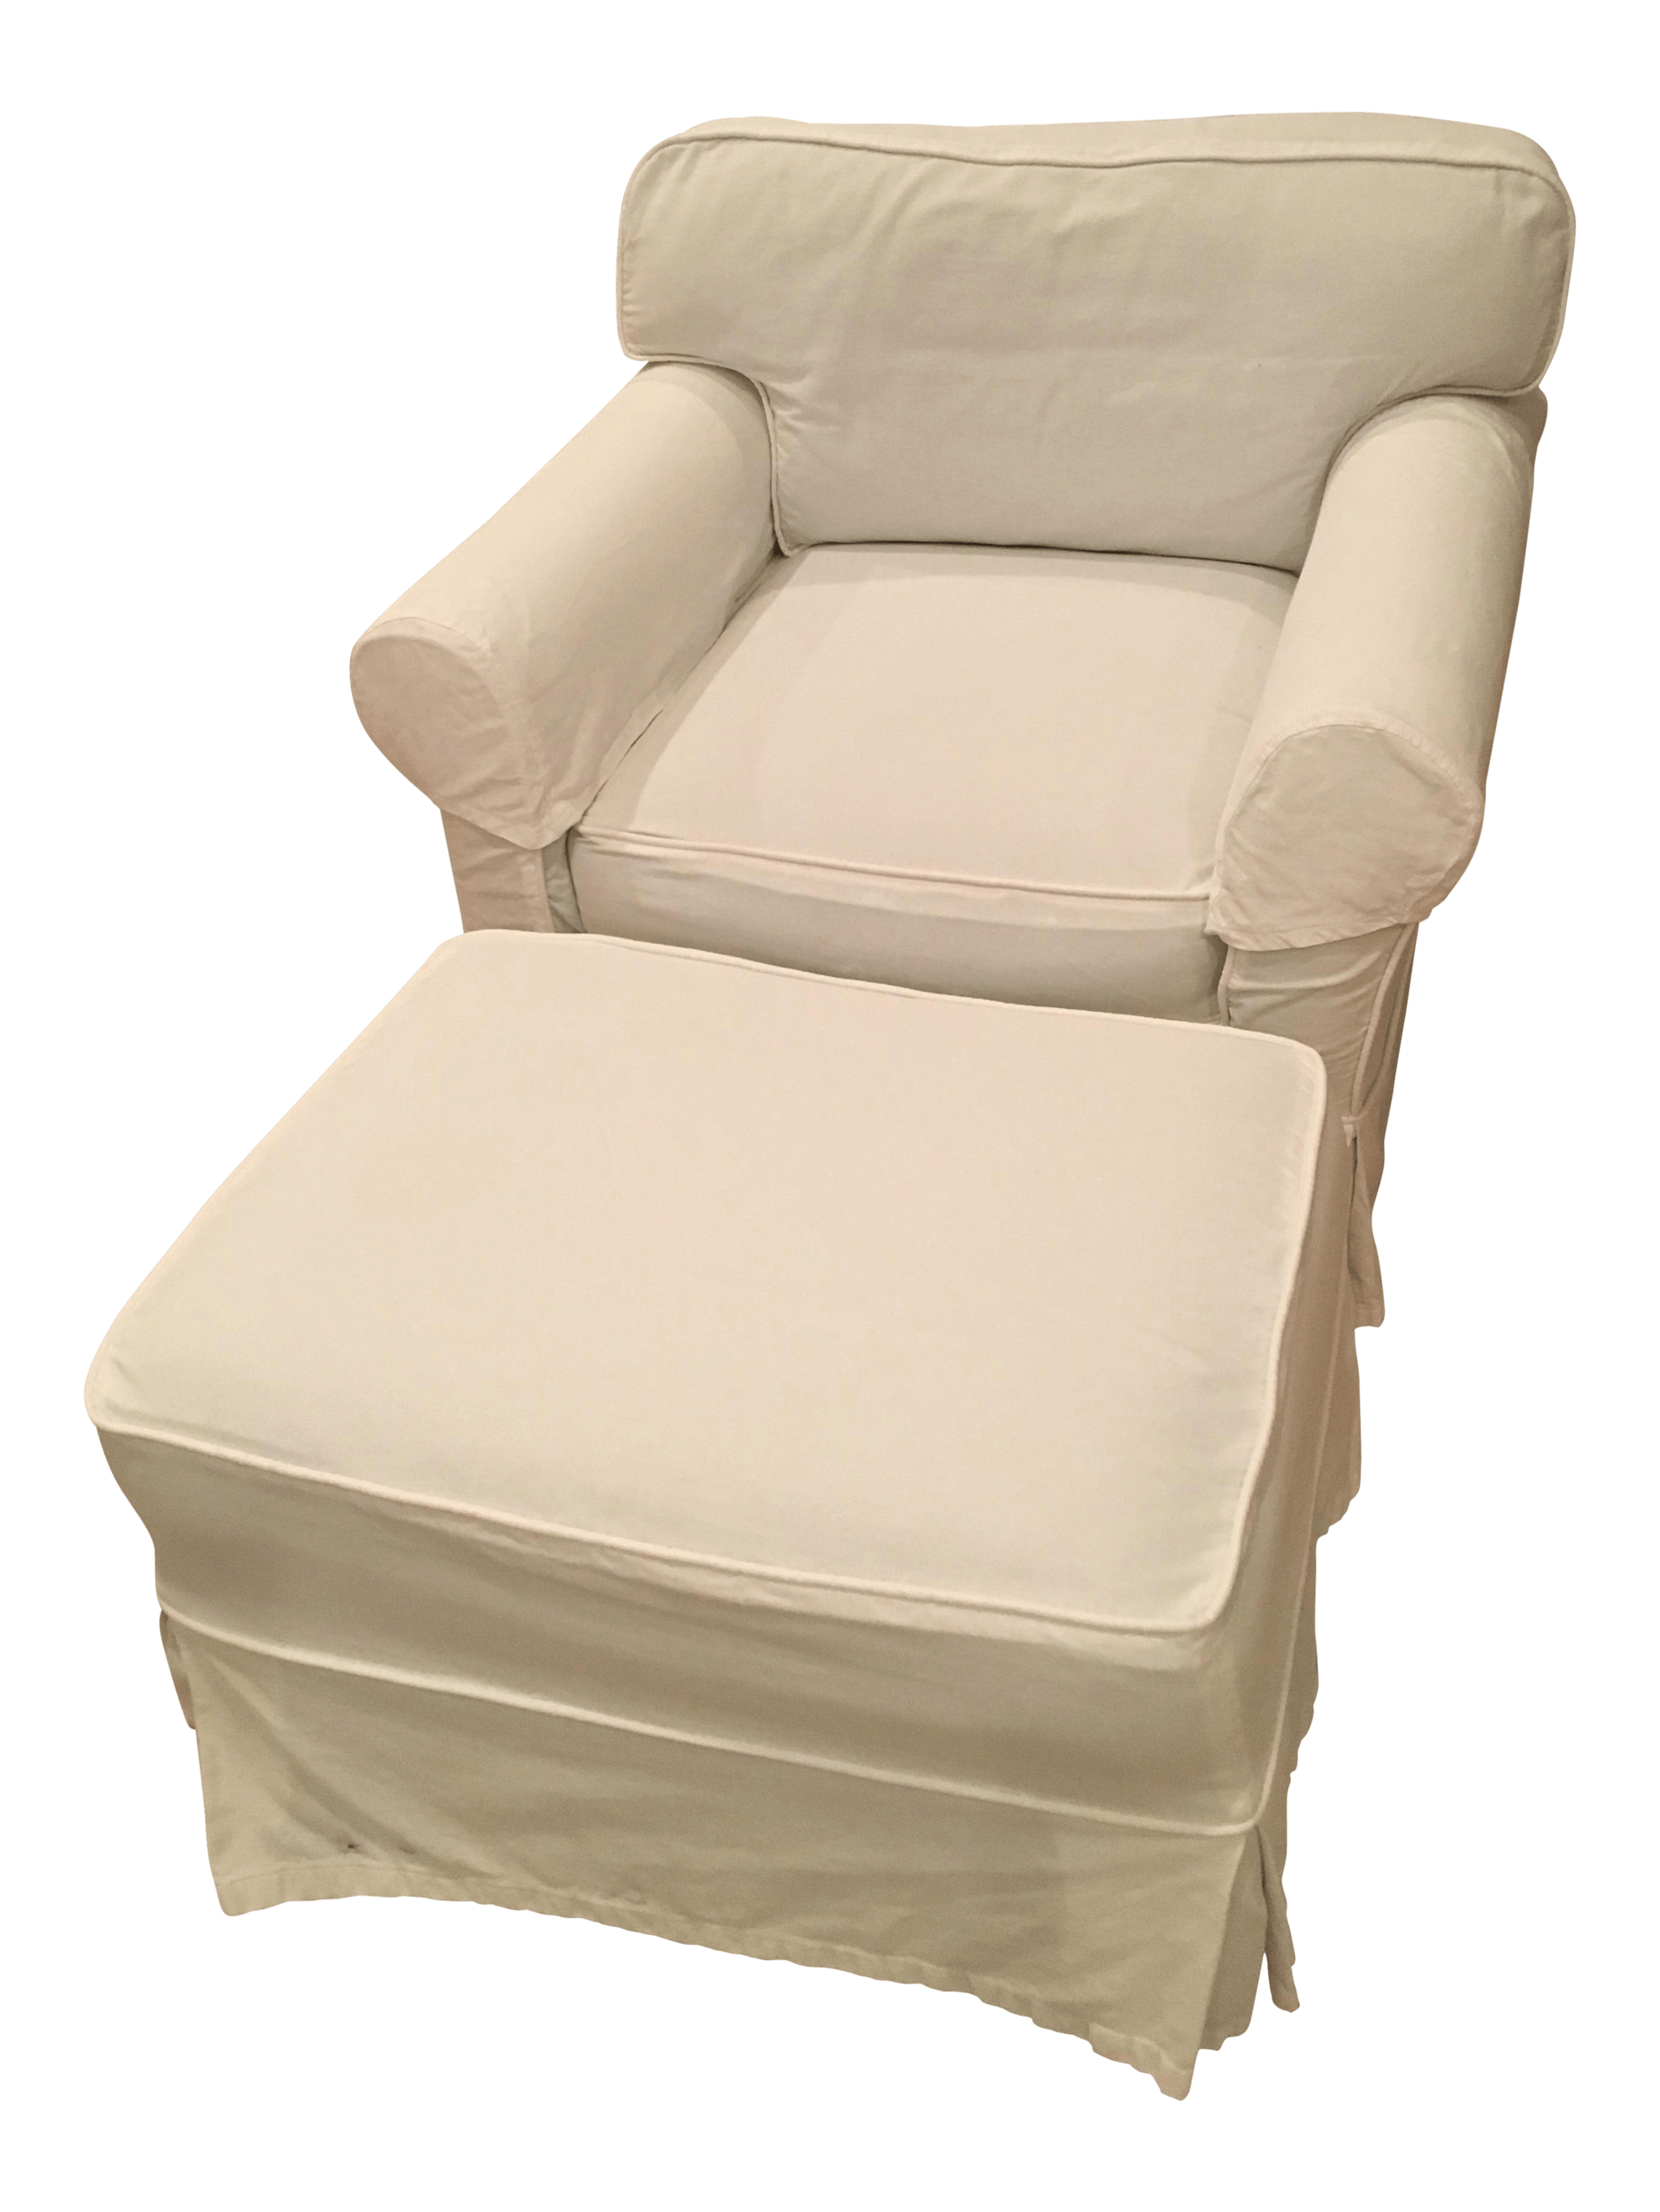 white slipcover chair and ottoman orange patio chairs slipcovered chairish for sale